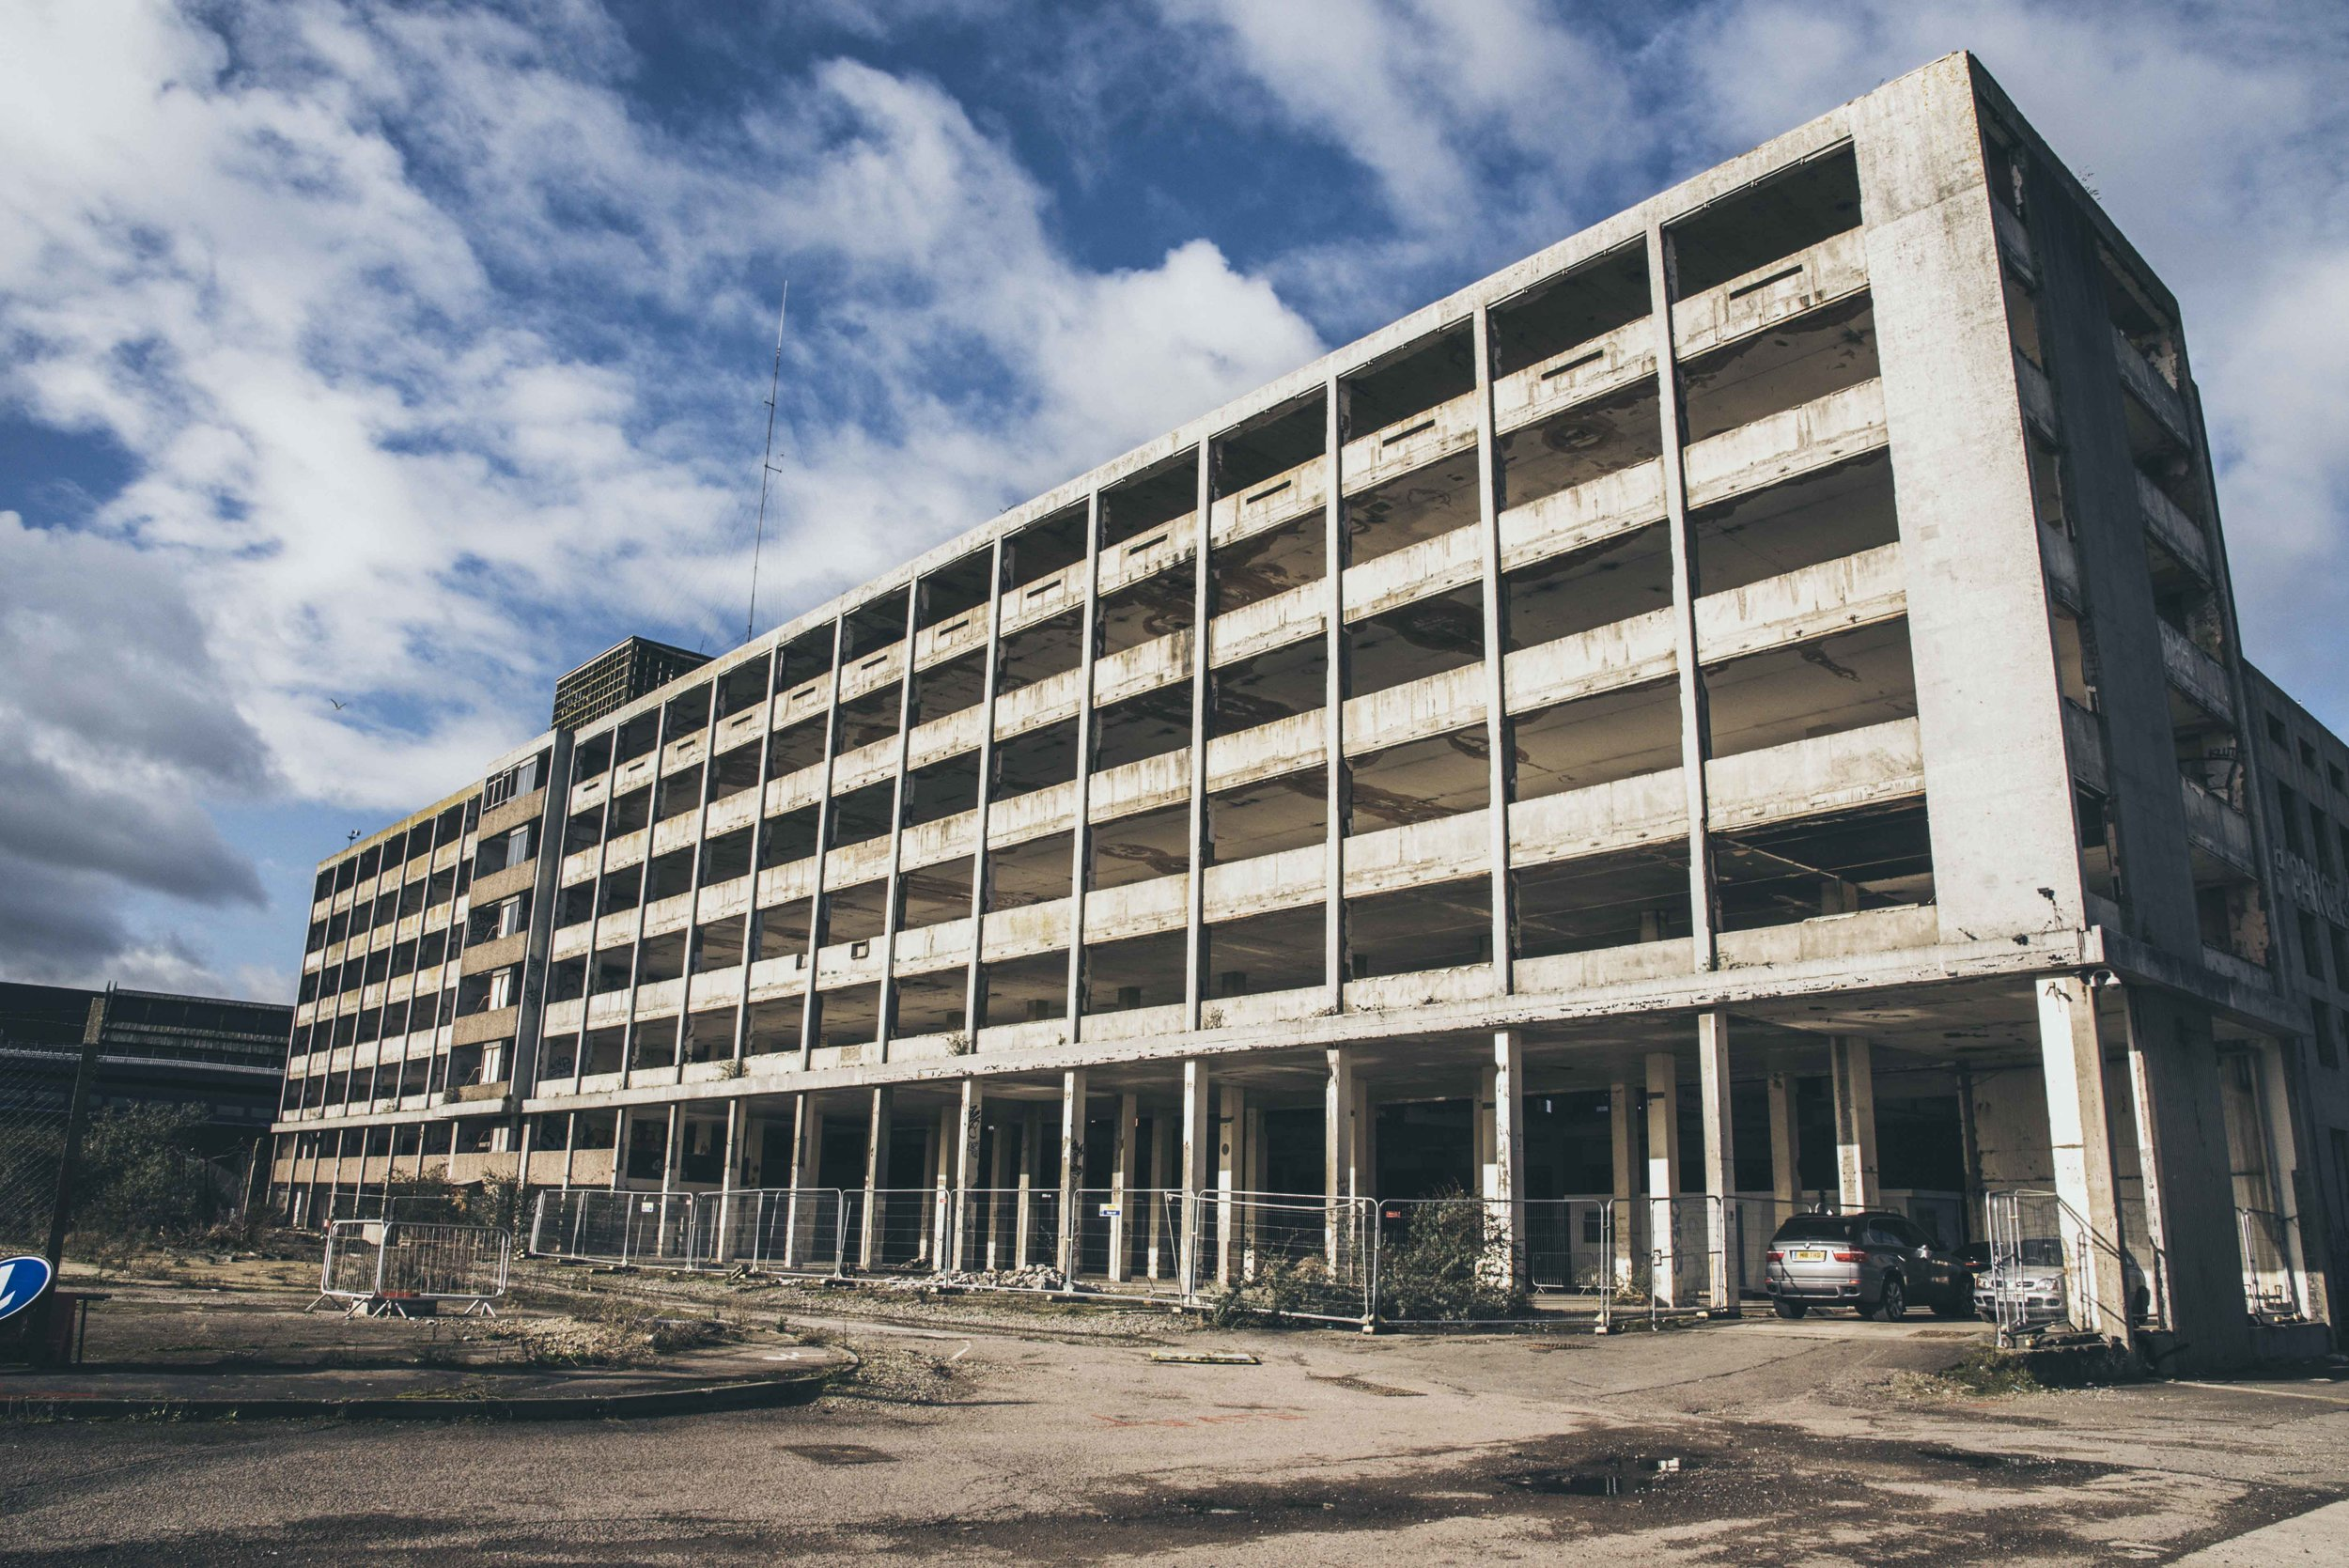 The Parcel Force building from the Cattle Market Road side. Callum Burns